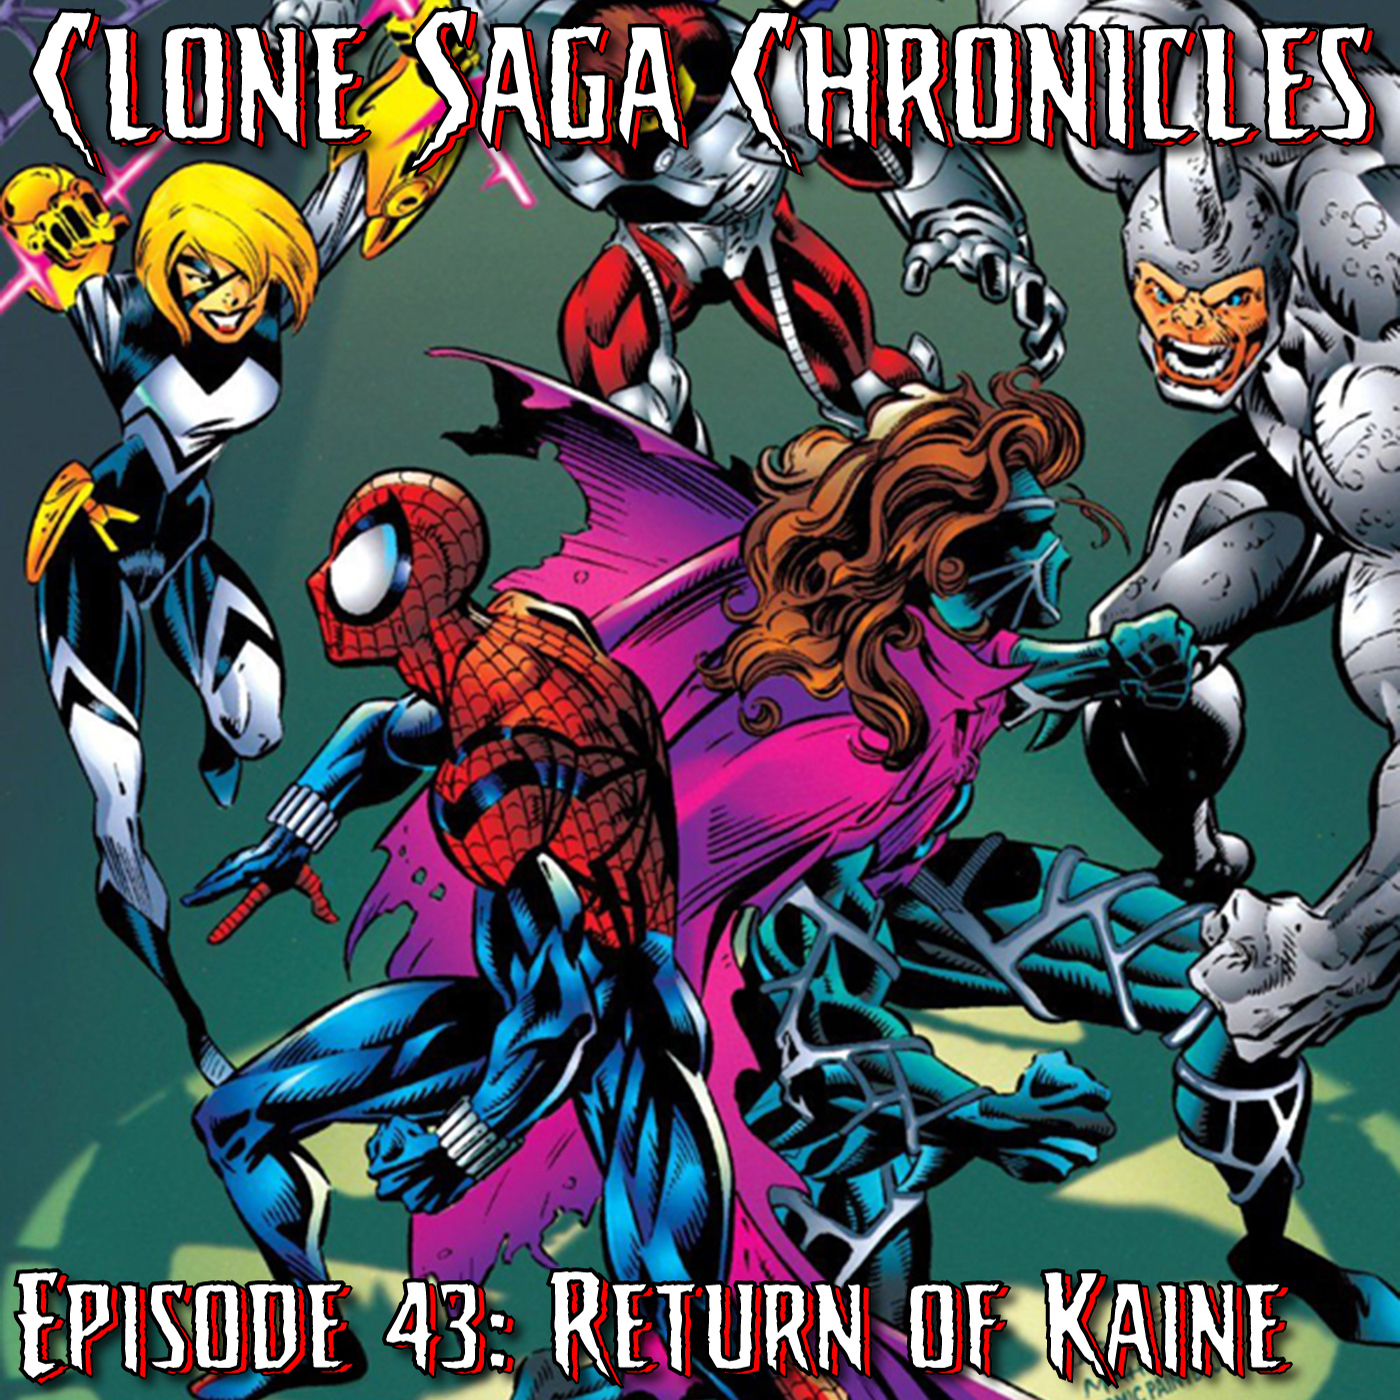 CSC Episode 43: The Return of Kaine (& an issue Spectacular)